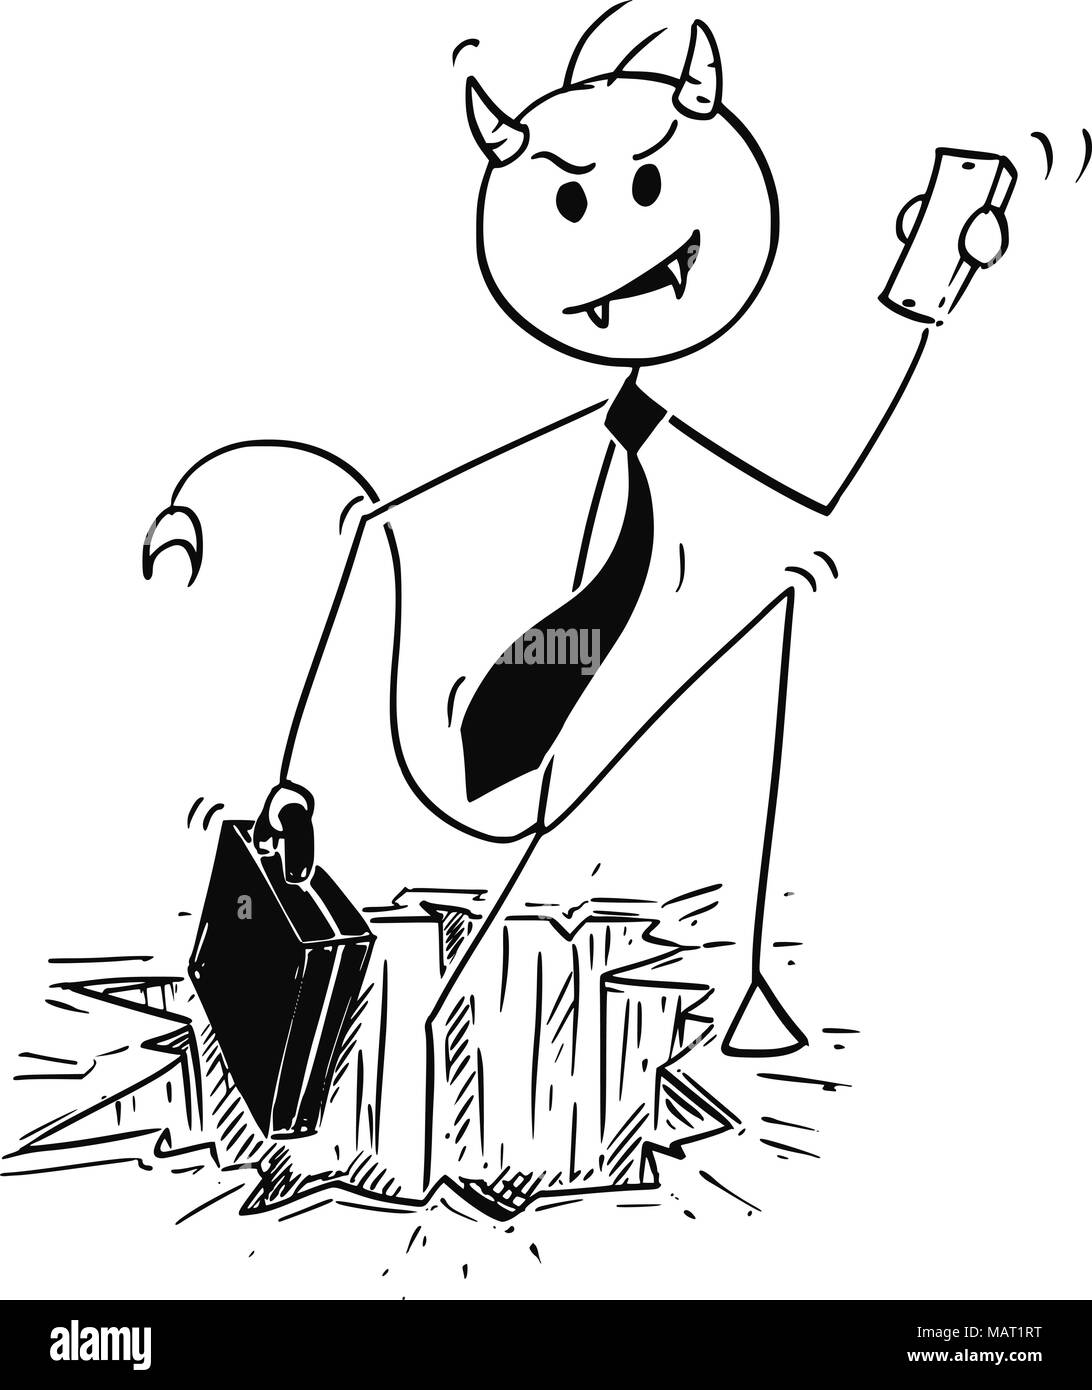 Cartoon of Businessman Devil Coming from Hole in Ground or Hell - Stock Image